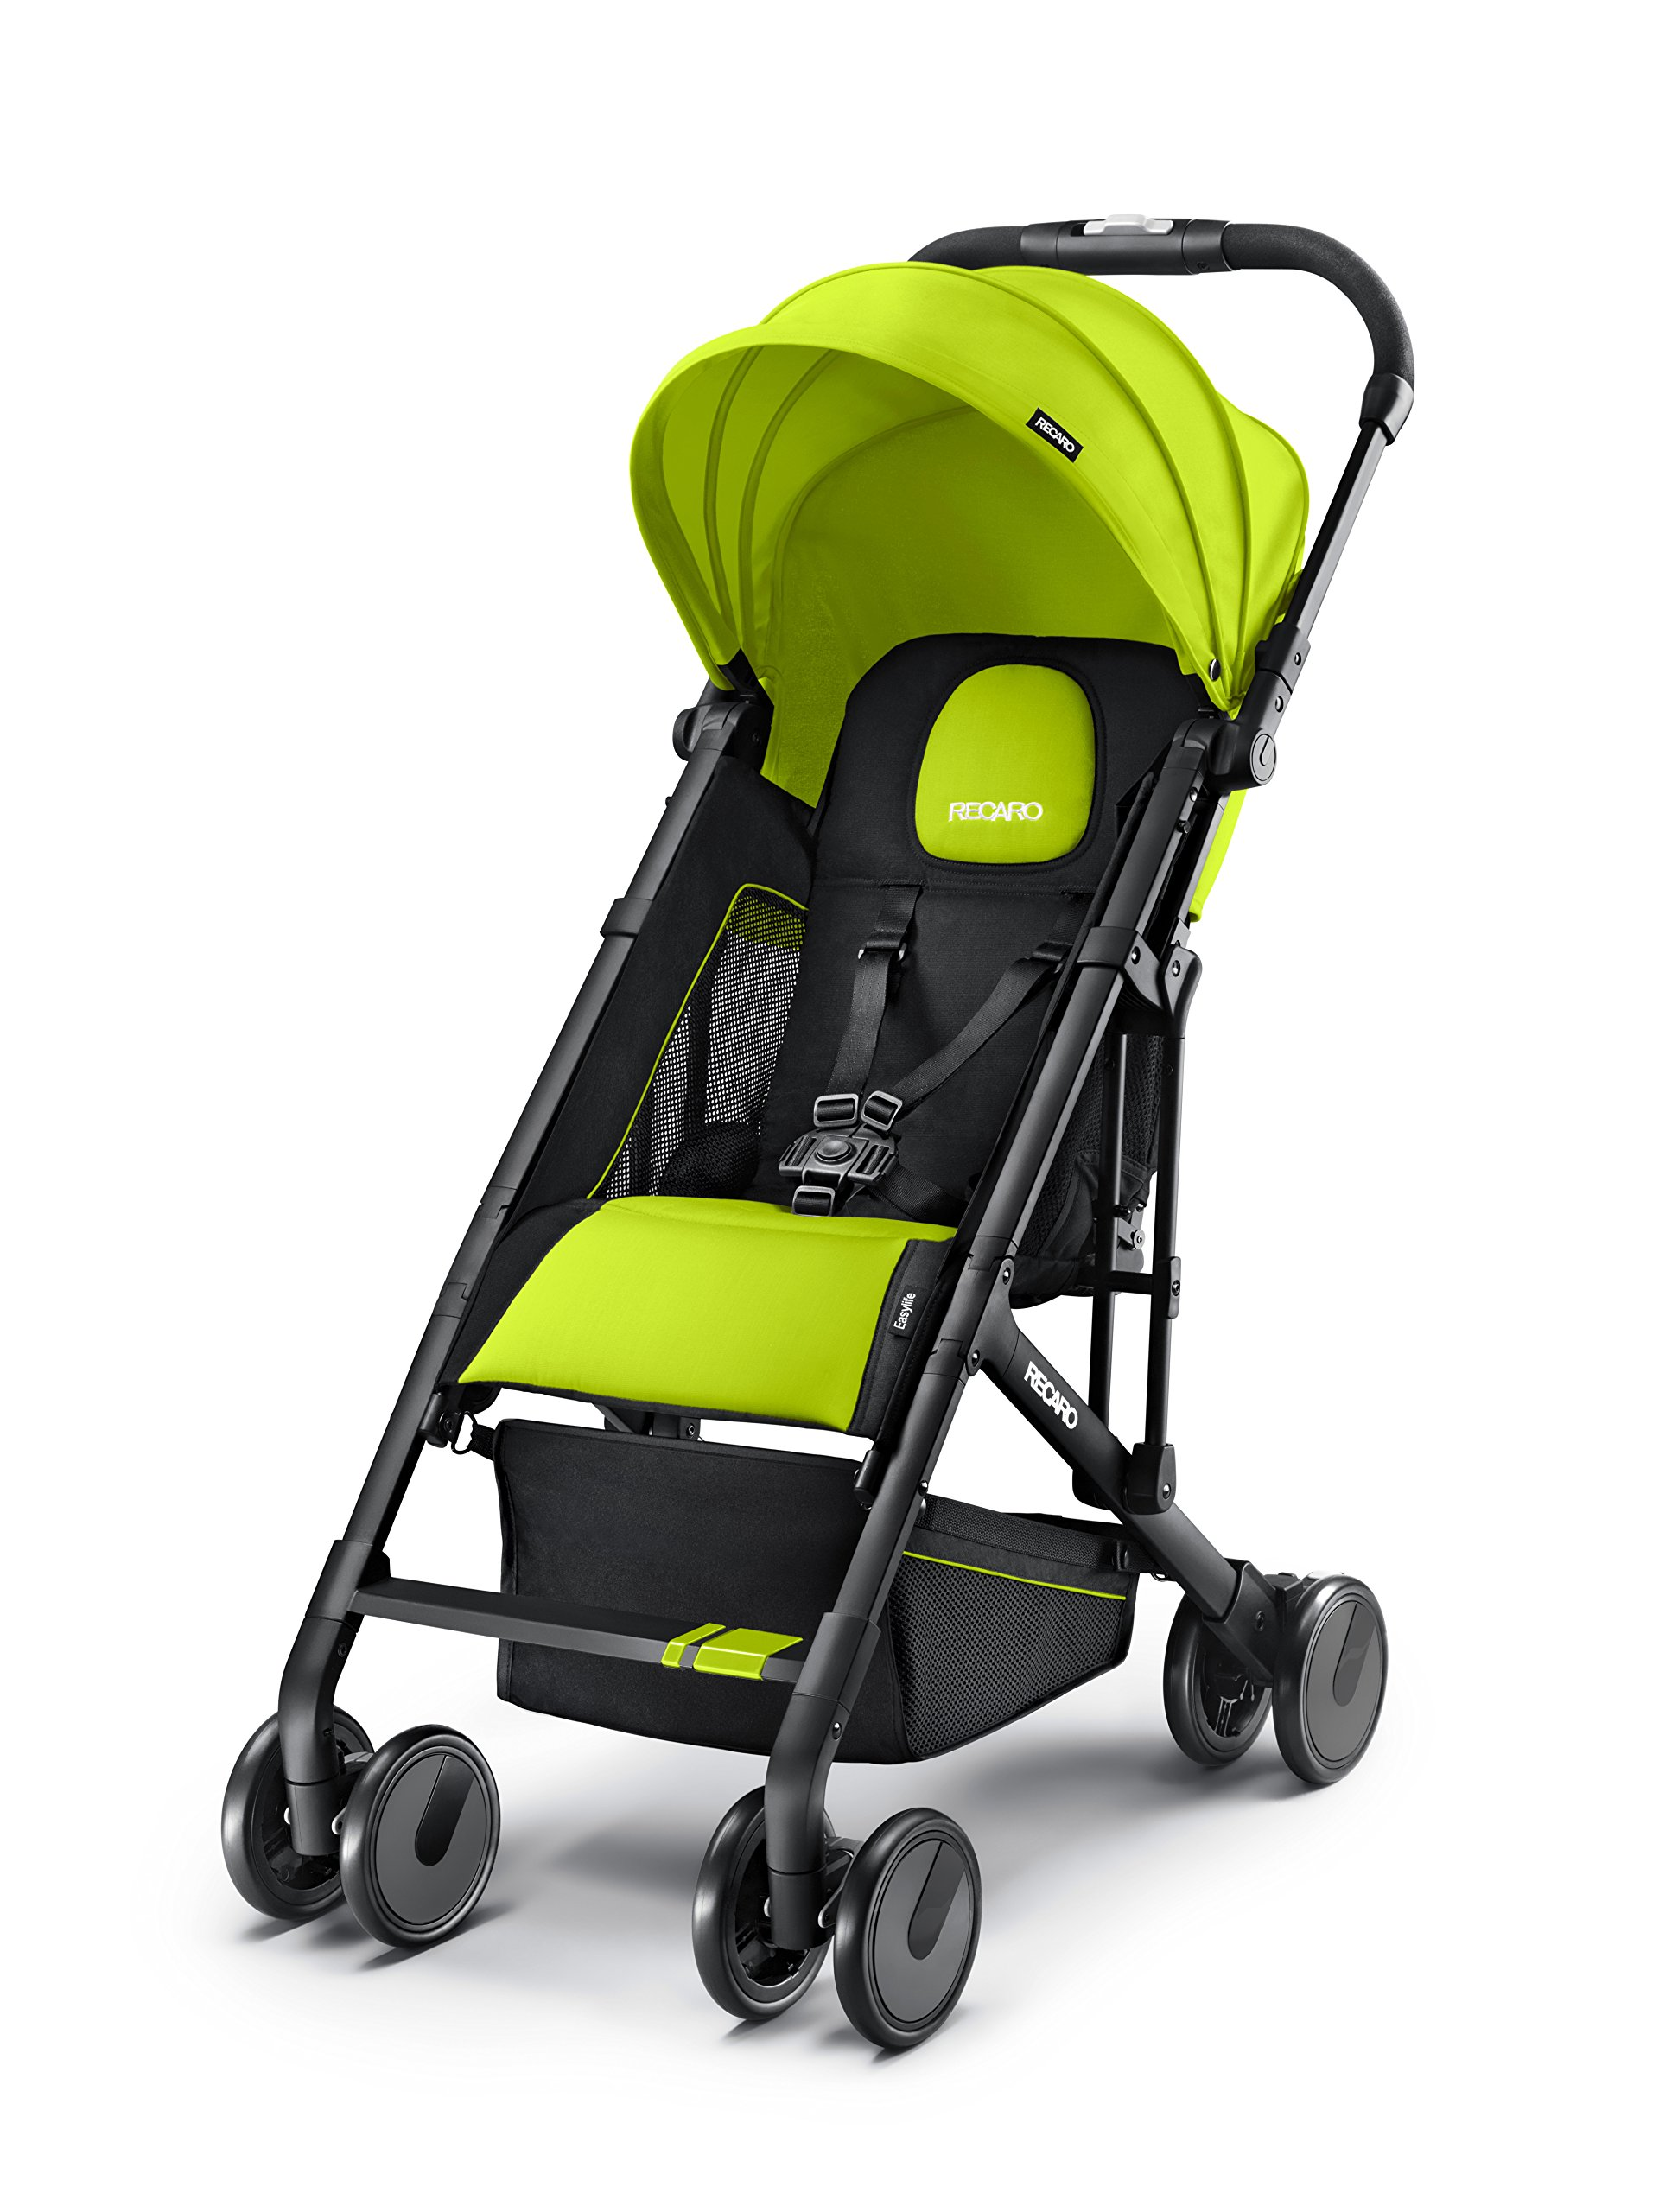 Recaro Easylife ''Lime'' Lightweight stroller for children from 6 months up to 15kg Pushchair